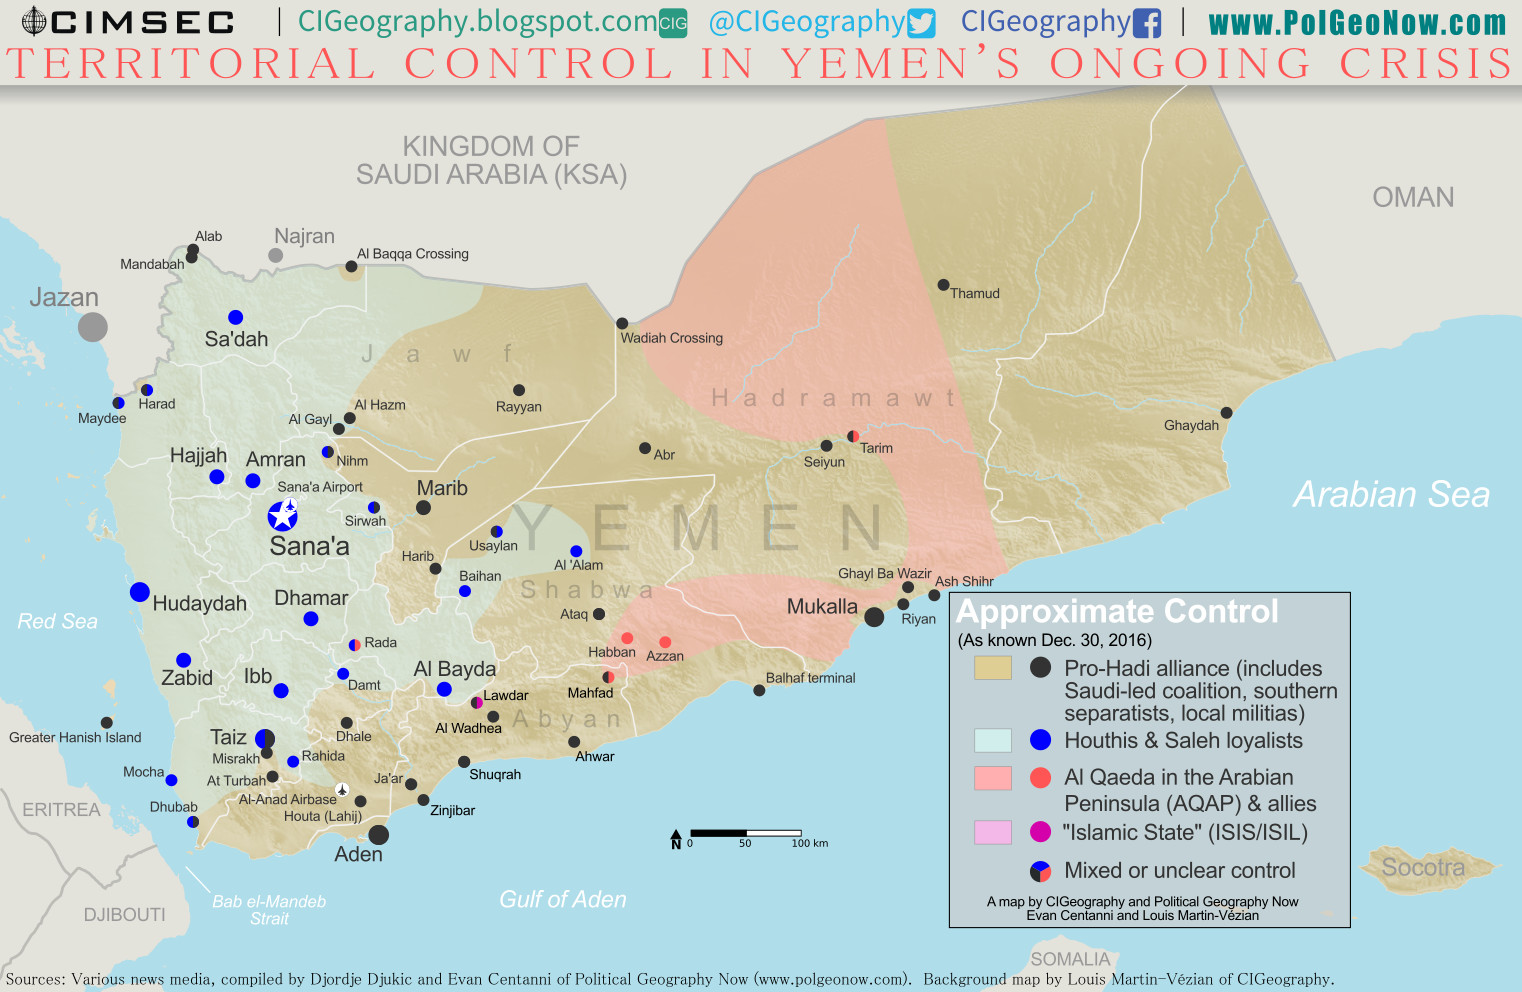 Map of what is happening in Yemen as of December 30, 2016, including territorial control for the Houthi rebels and former president Saleh's forces, president-in-exile Hadi and his allies in the Saudi-led coalition and Southern Movement, Al Qaeda in the Arabian Peninsula (AQAP), and the so-called Islamic State (ISIS/ISIL). Includes recent locations of fighting, including Al Gail, Sirwah, Usaylan, and areas long the Yemen border with Saudi Arabia. Colorblind accessible.